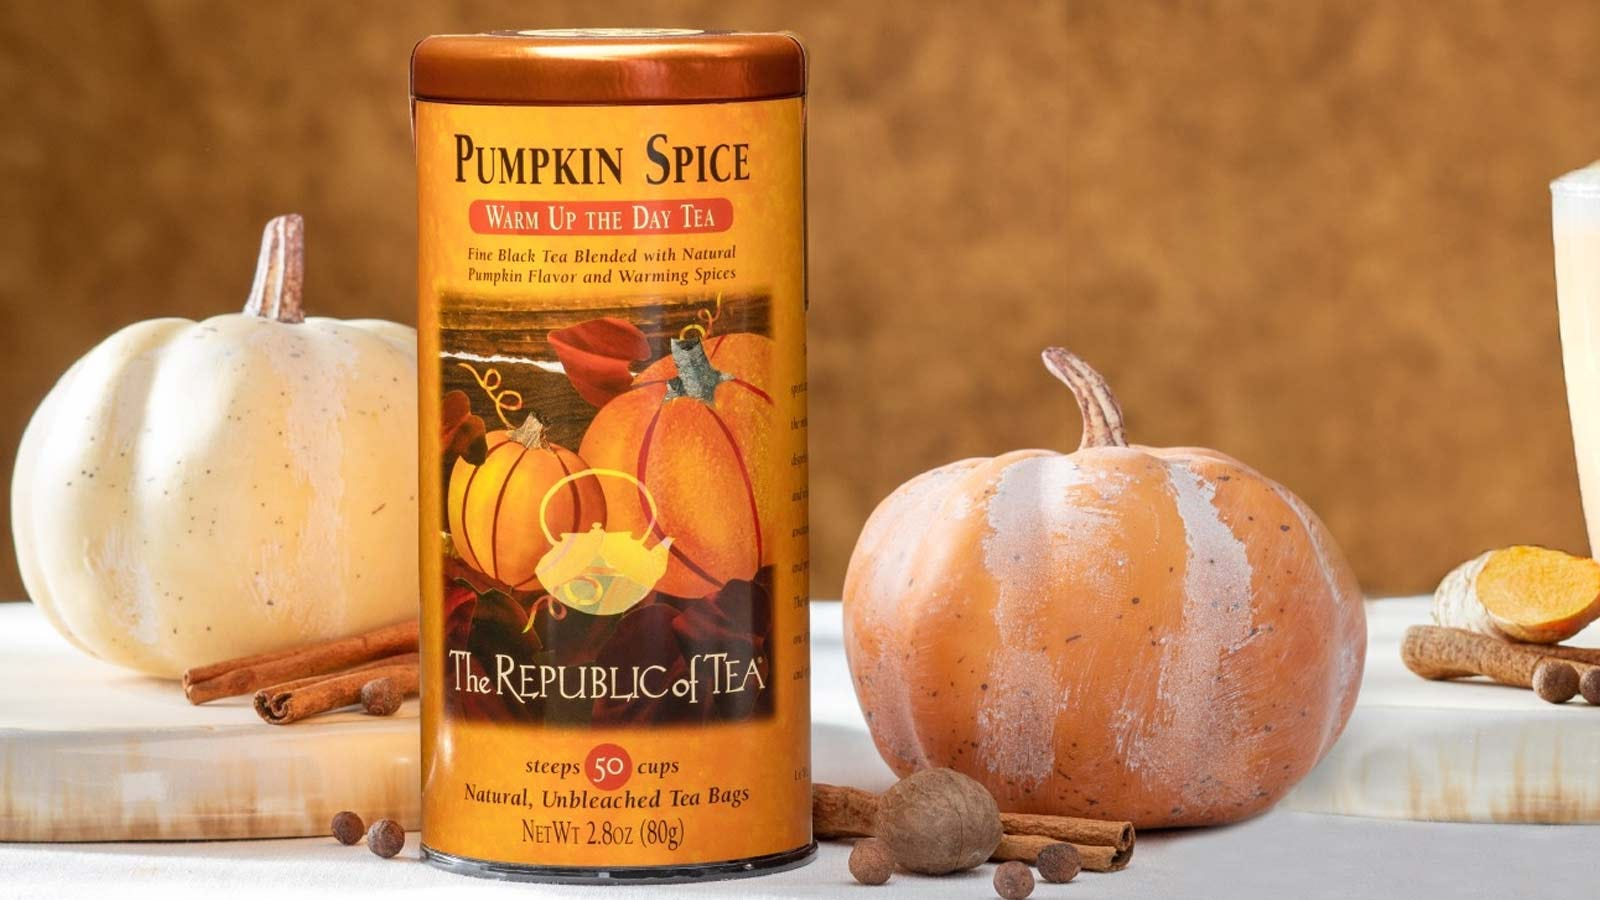 A canister of Pumpkin Spice tea, from The Republic of Tea, sitting on a table with spices and pumpkins.